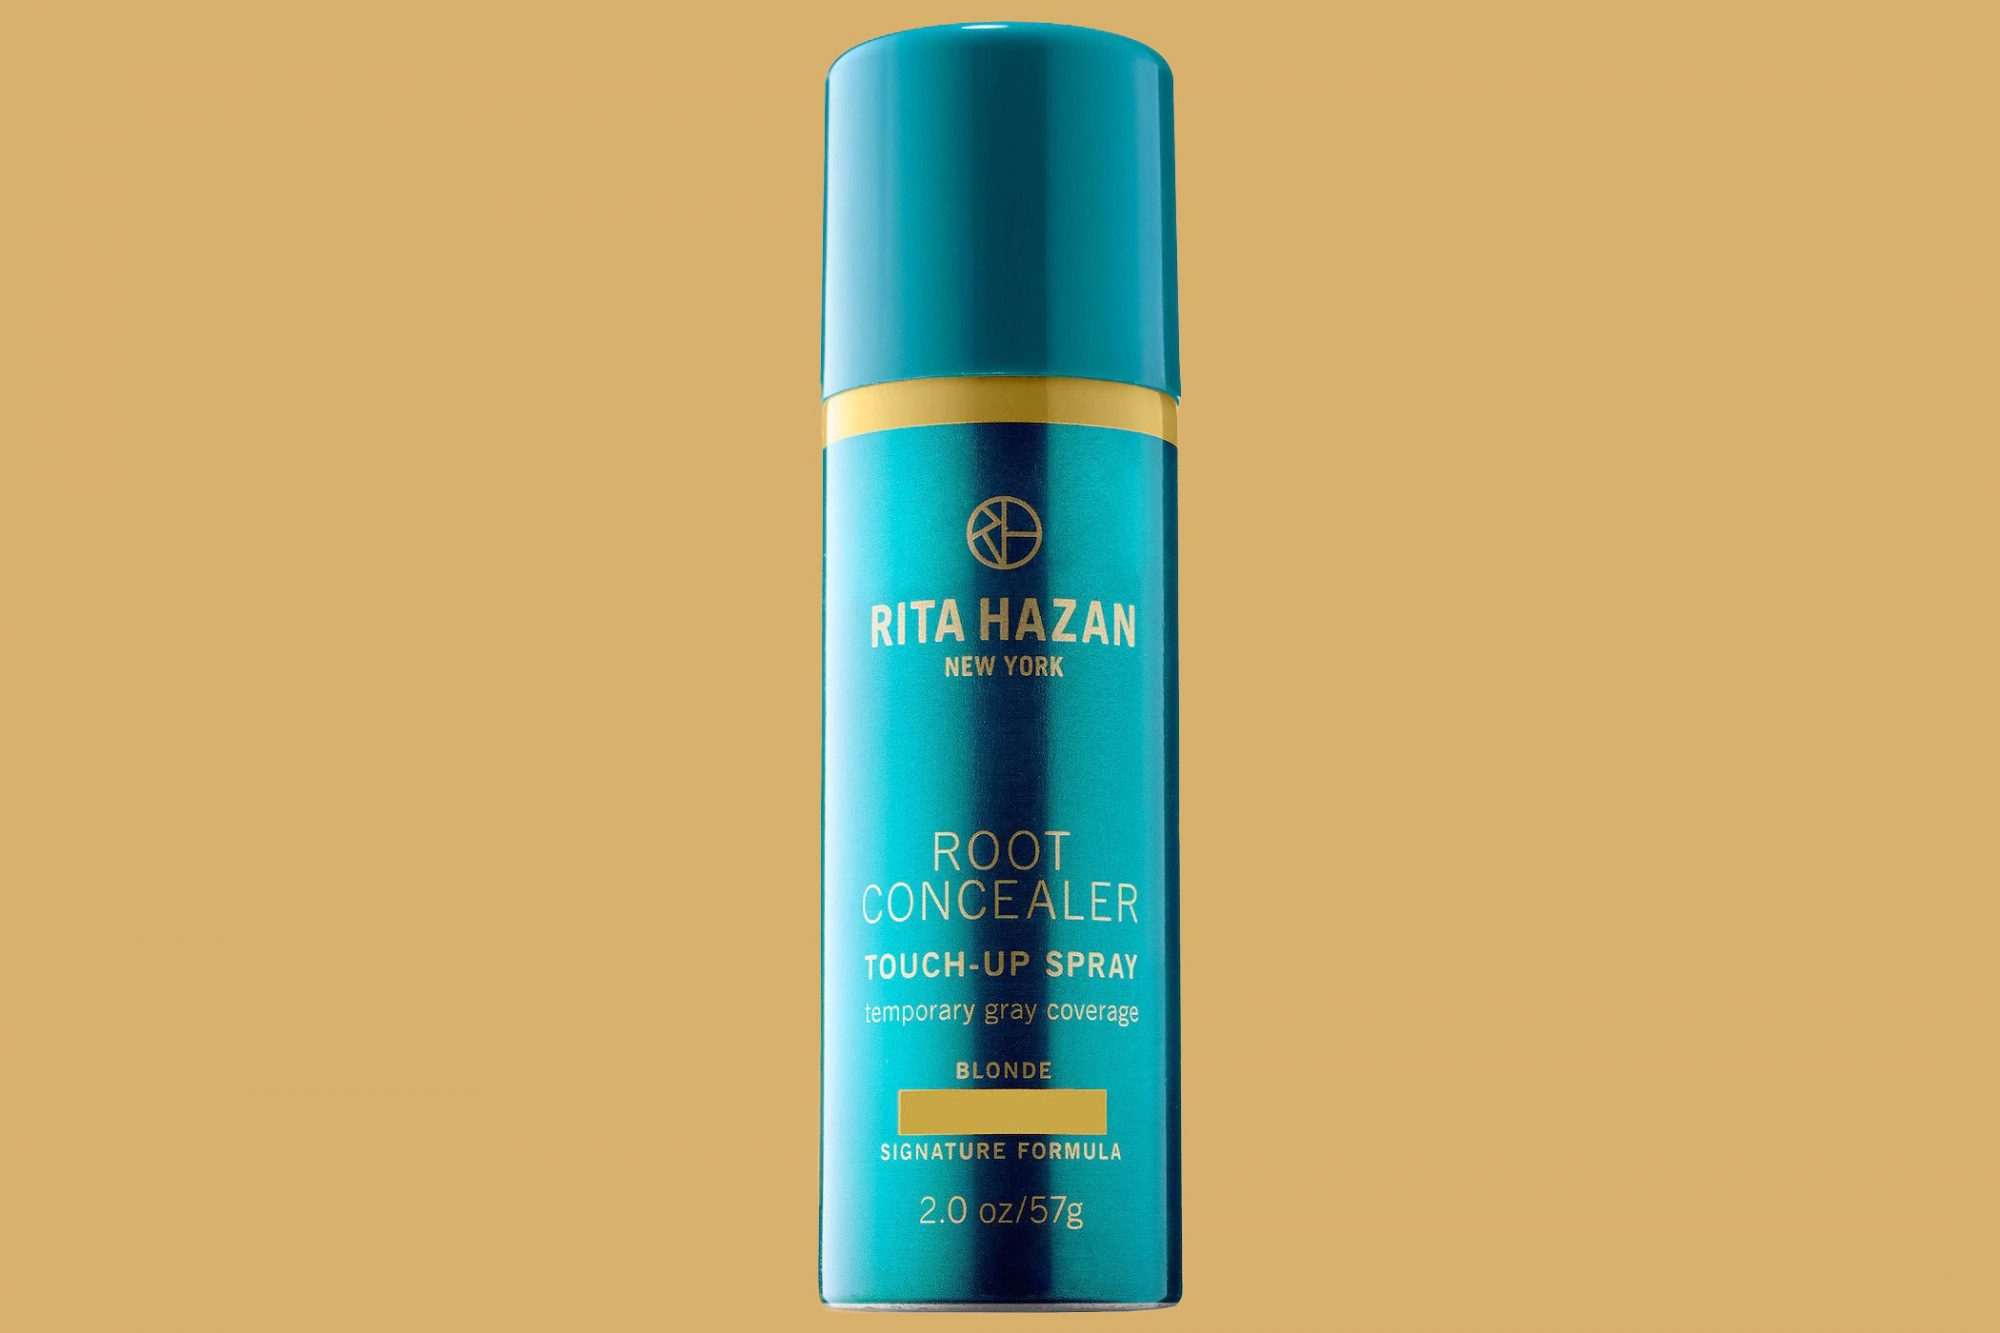 Rita Hazan Root Concealer Touch-Up Spray for Temporary Gray Coverage